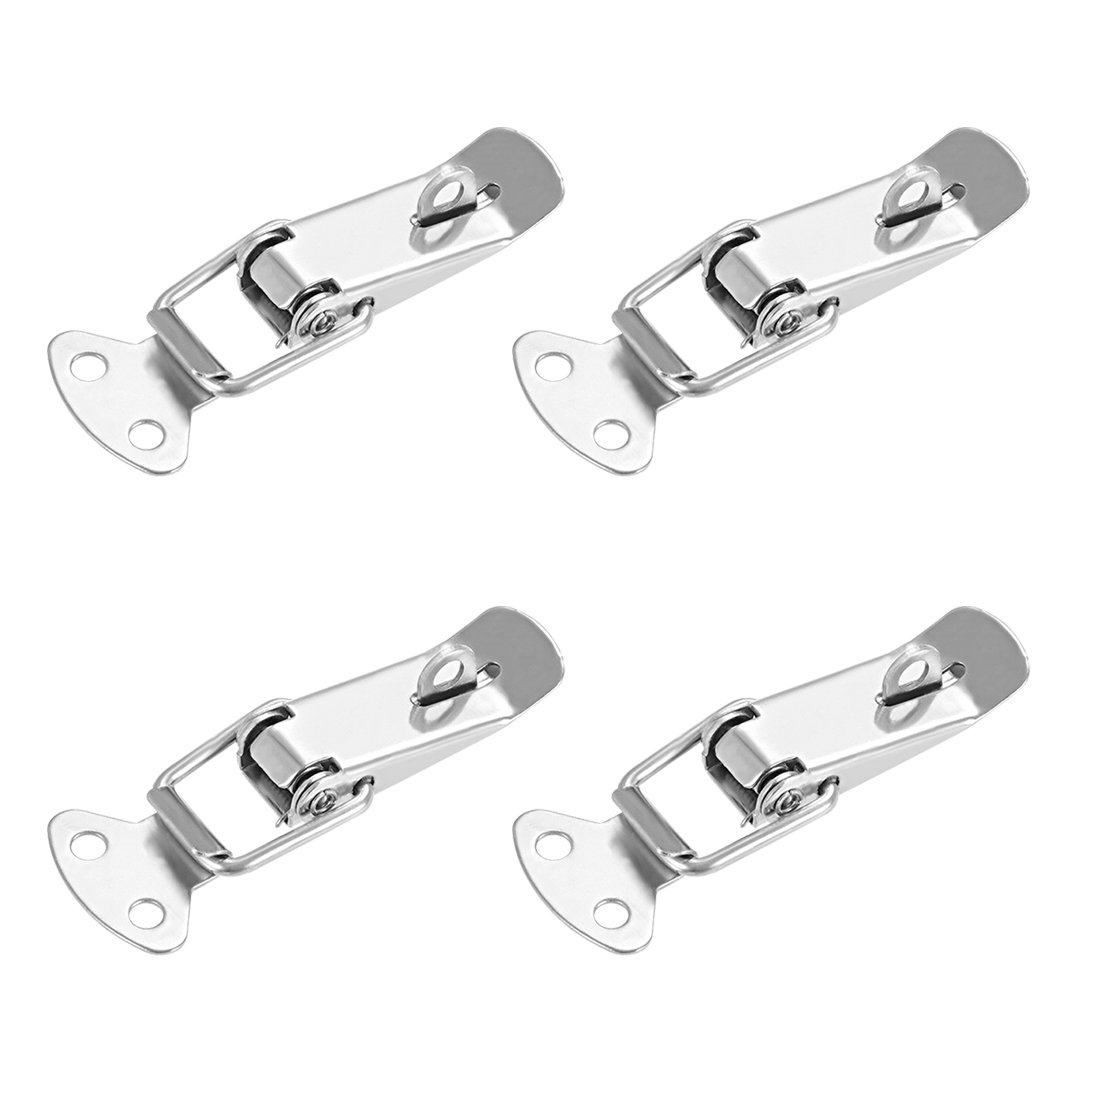 a18060700ux0322 Pack of 1 with Lock Hole uxcell Spring Loaded Toggle Latches 90mm Length Stainless Steel 201 Hasps Clamps for Case Box Trunk Catches